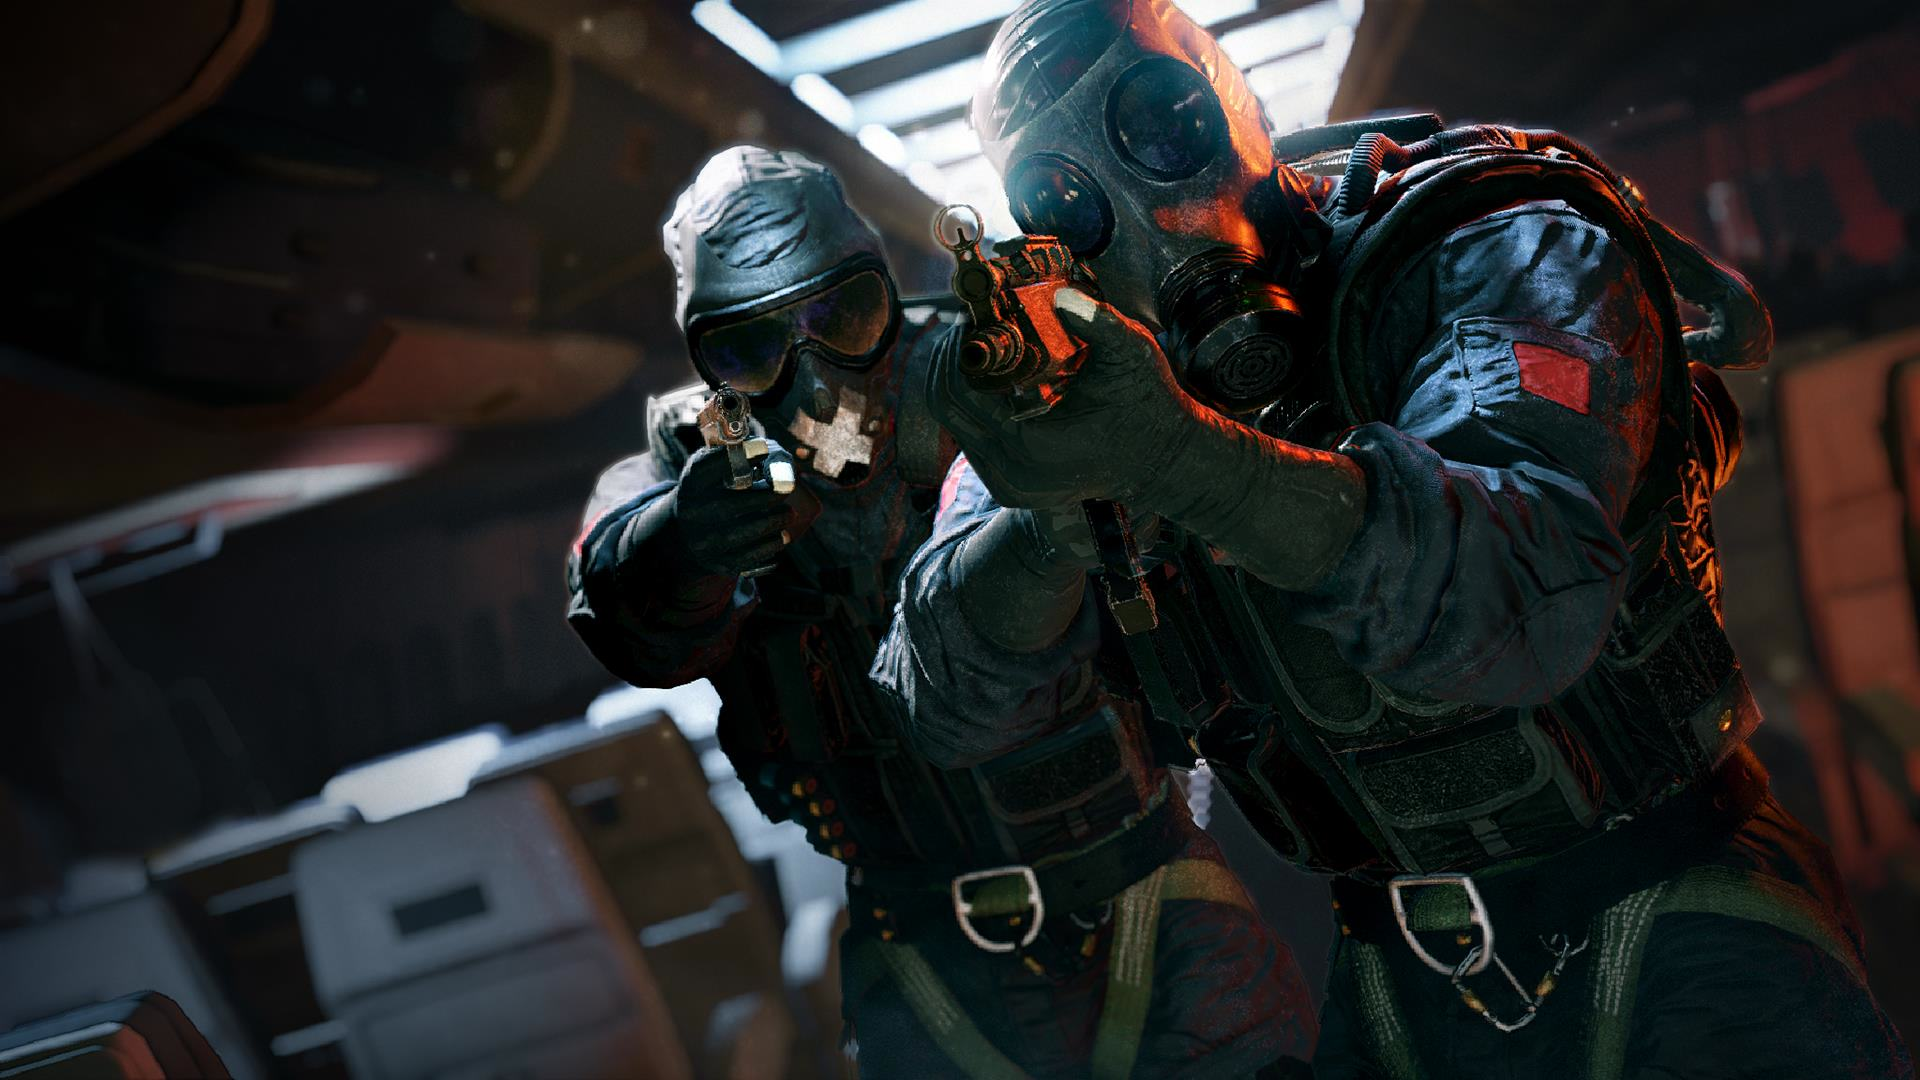 UNILAD rainbow six siege new screen 149466 Rainbow Six Sieges Beta Kicks Off Next Week With New Content